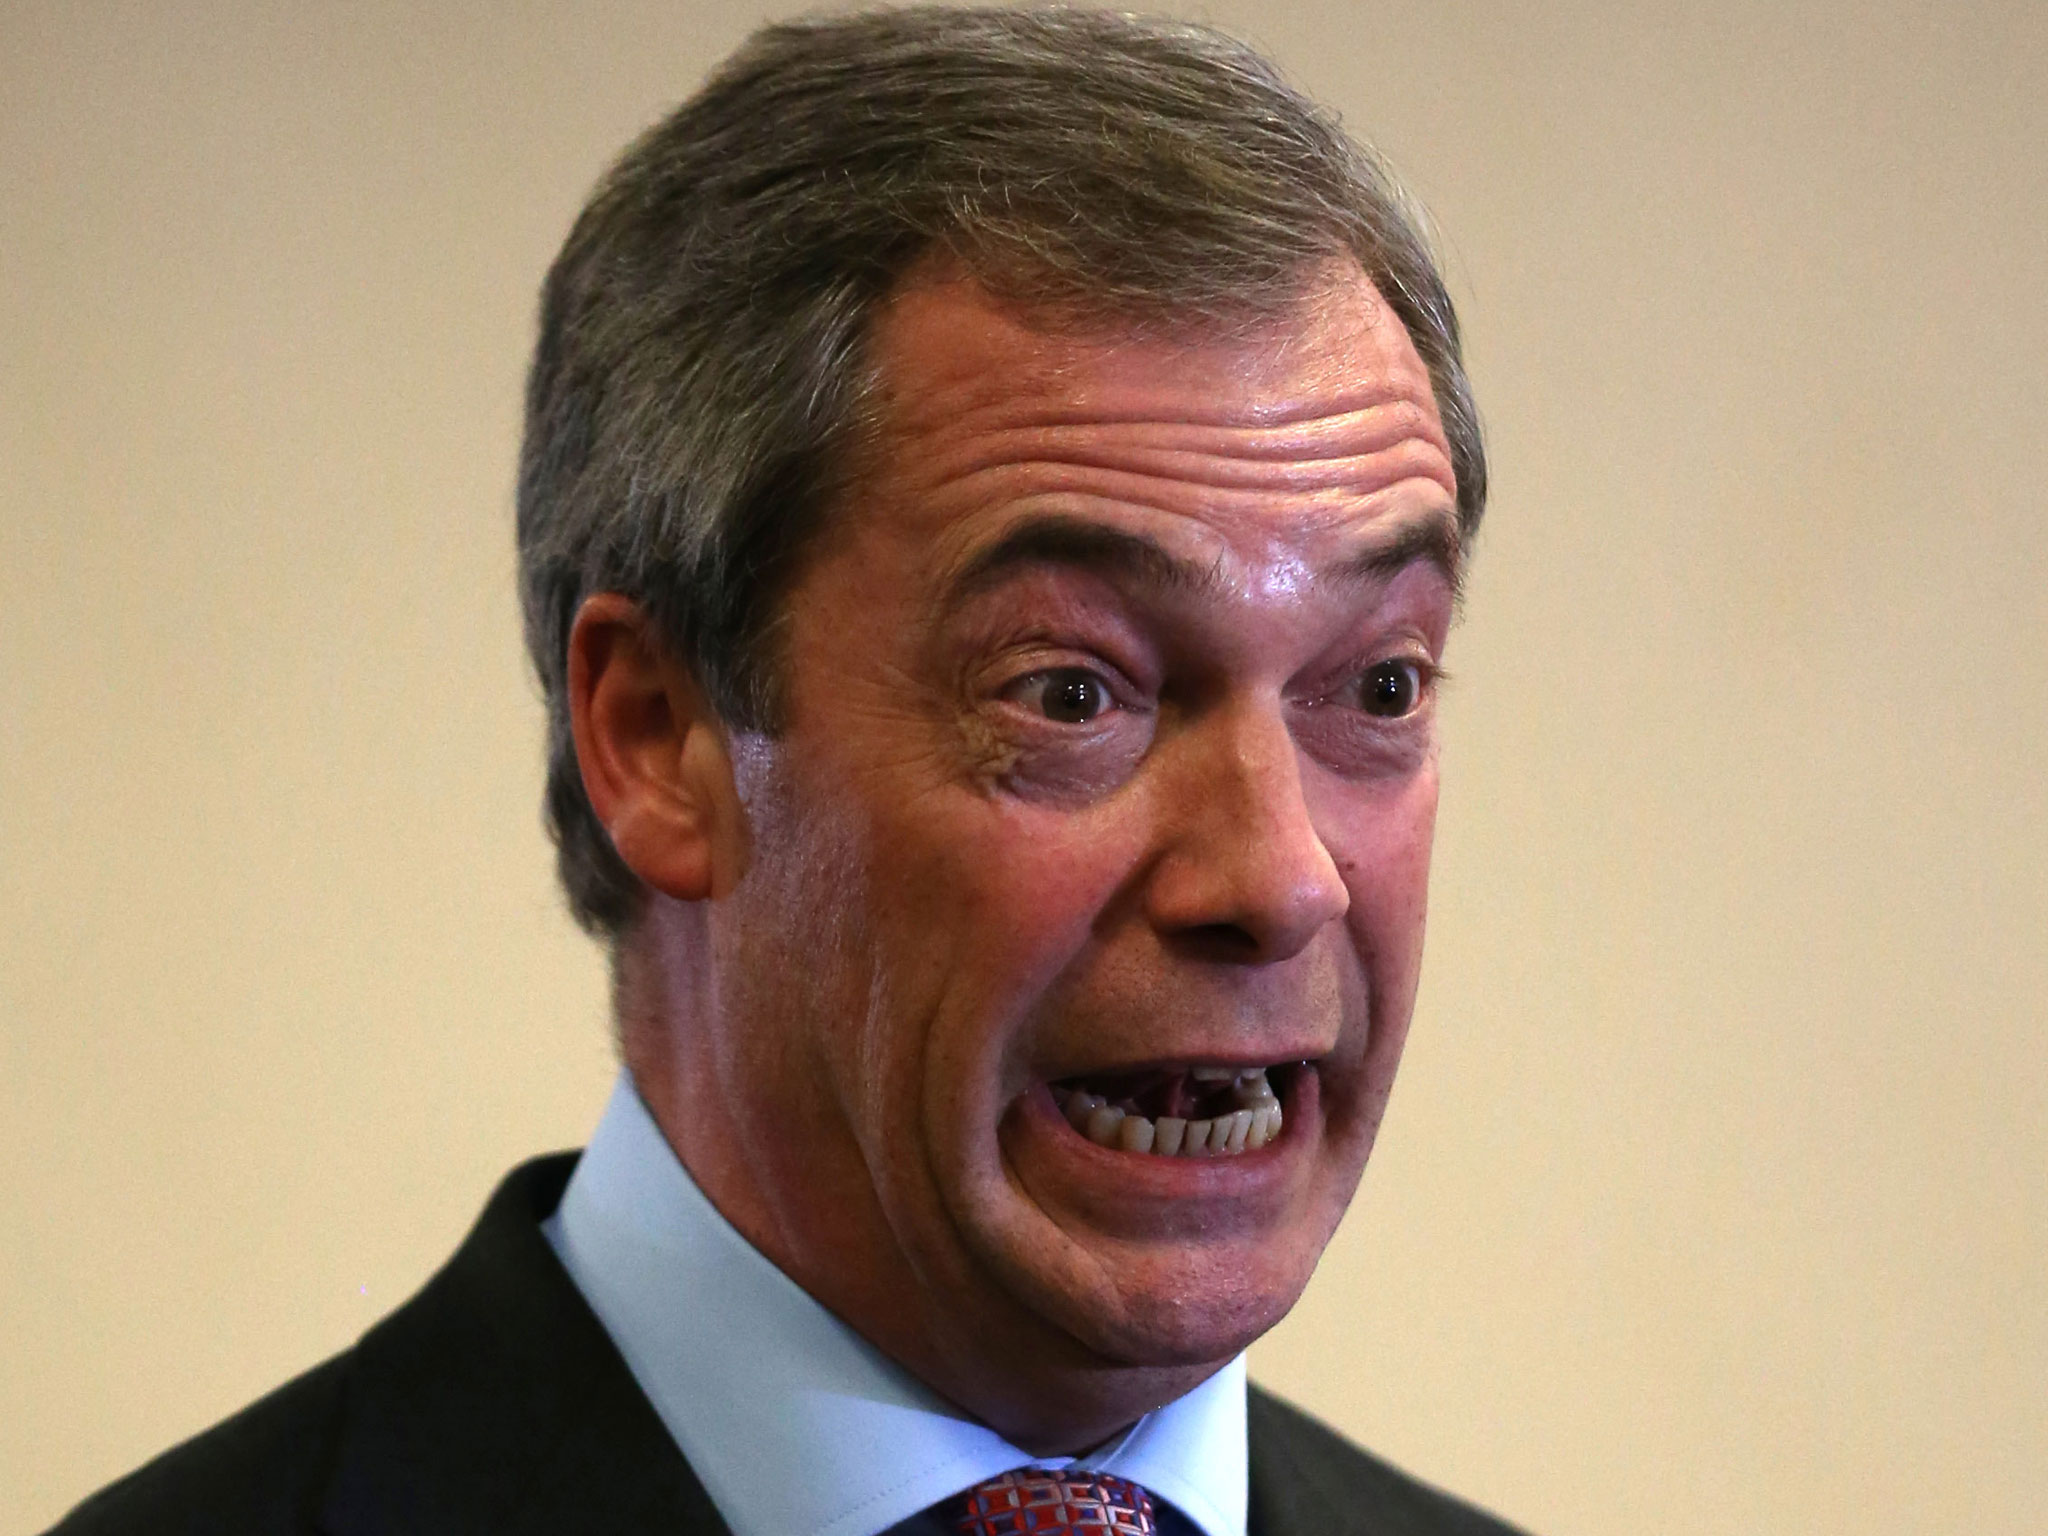 Ukip Leader Nigel Farage Defends Employing German Wife, At Launch Of